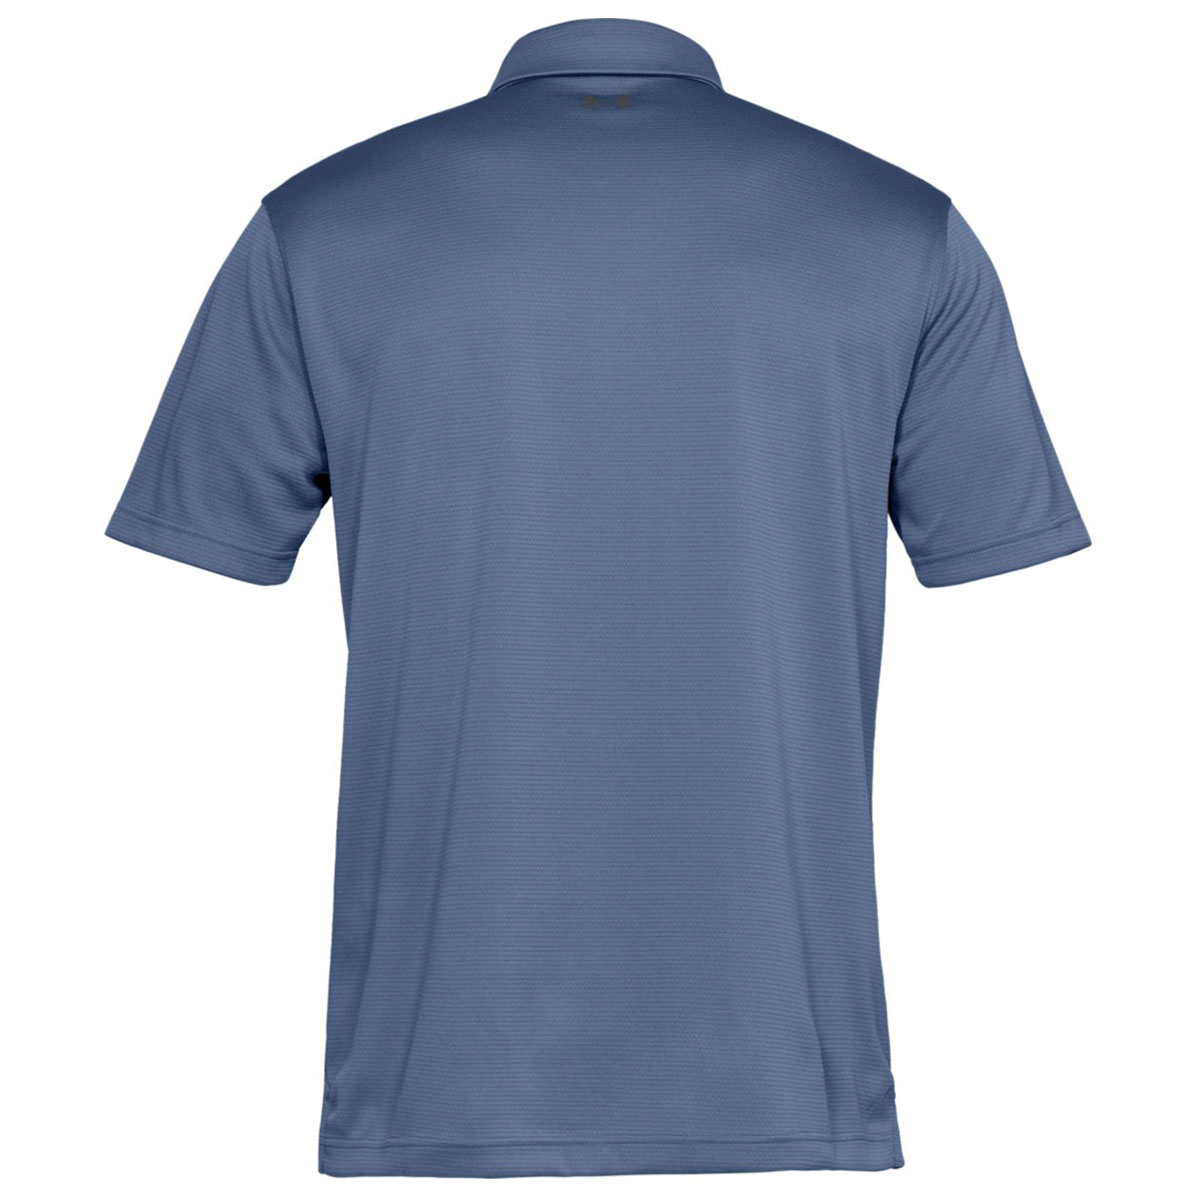 Under-Armour-Mens-2019-Golf-Tech-Wicking-Textured-Soft-Light-Polo-Shirt thumbnail 83